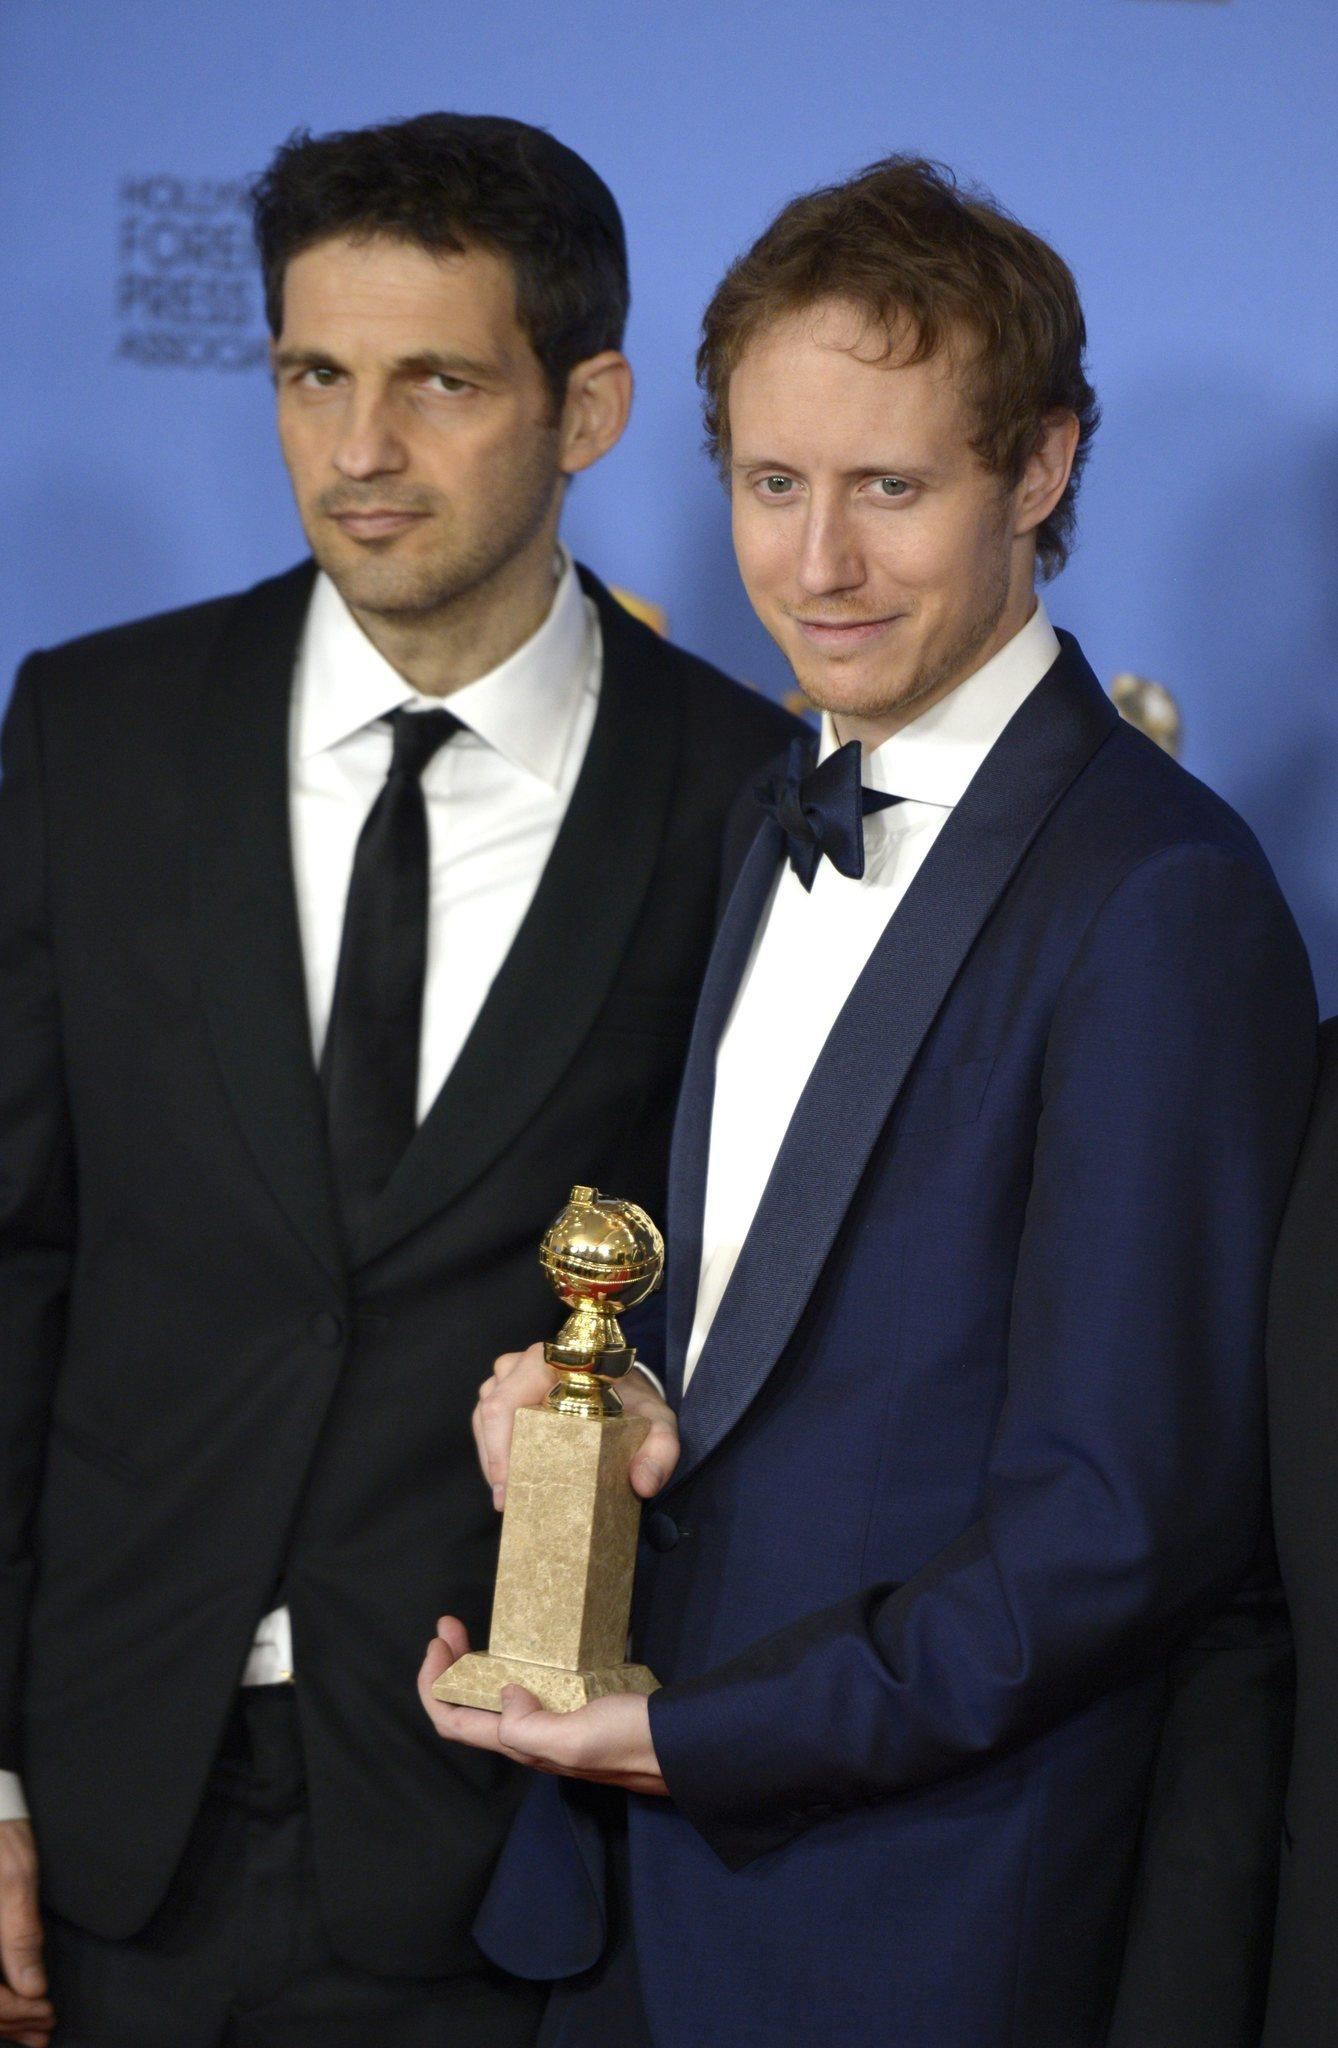 """Son of Saul's"" László Nemes, right, and Géza Röhrig. (Paul Buck / European Pressphoto Agency)"